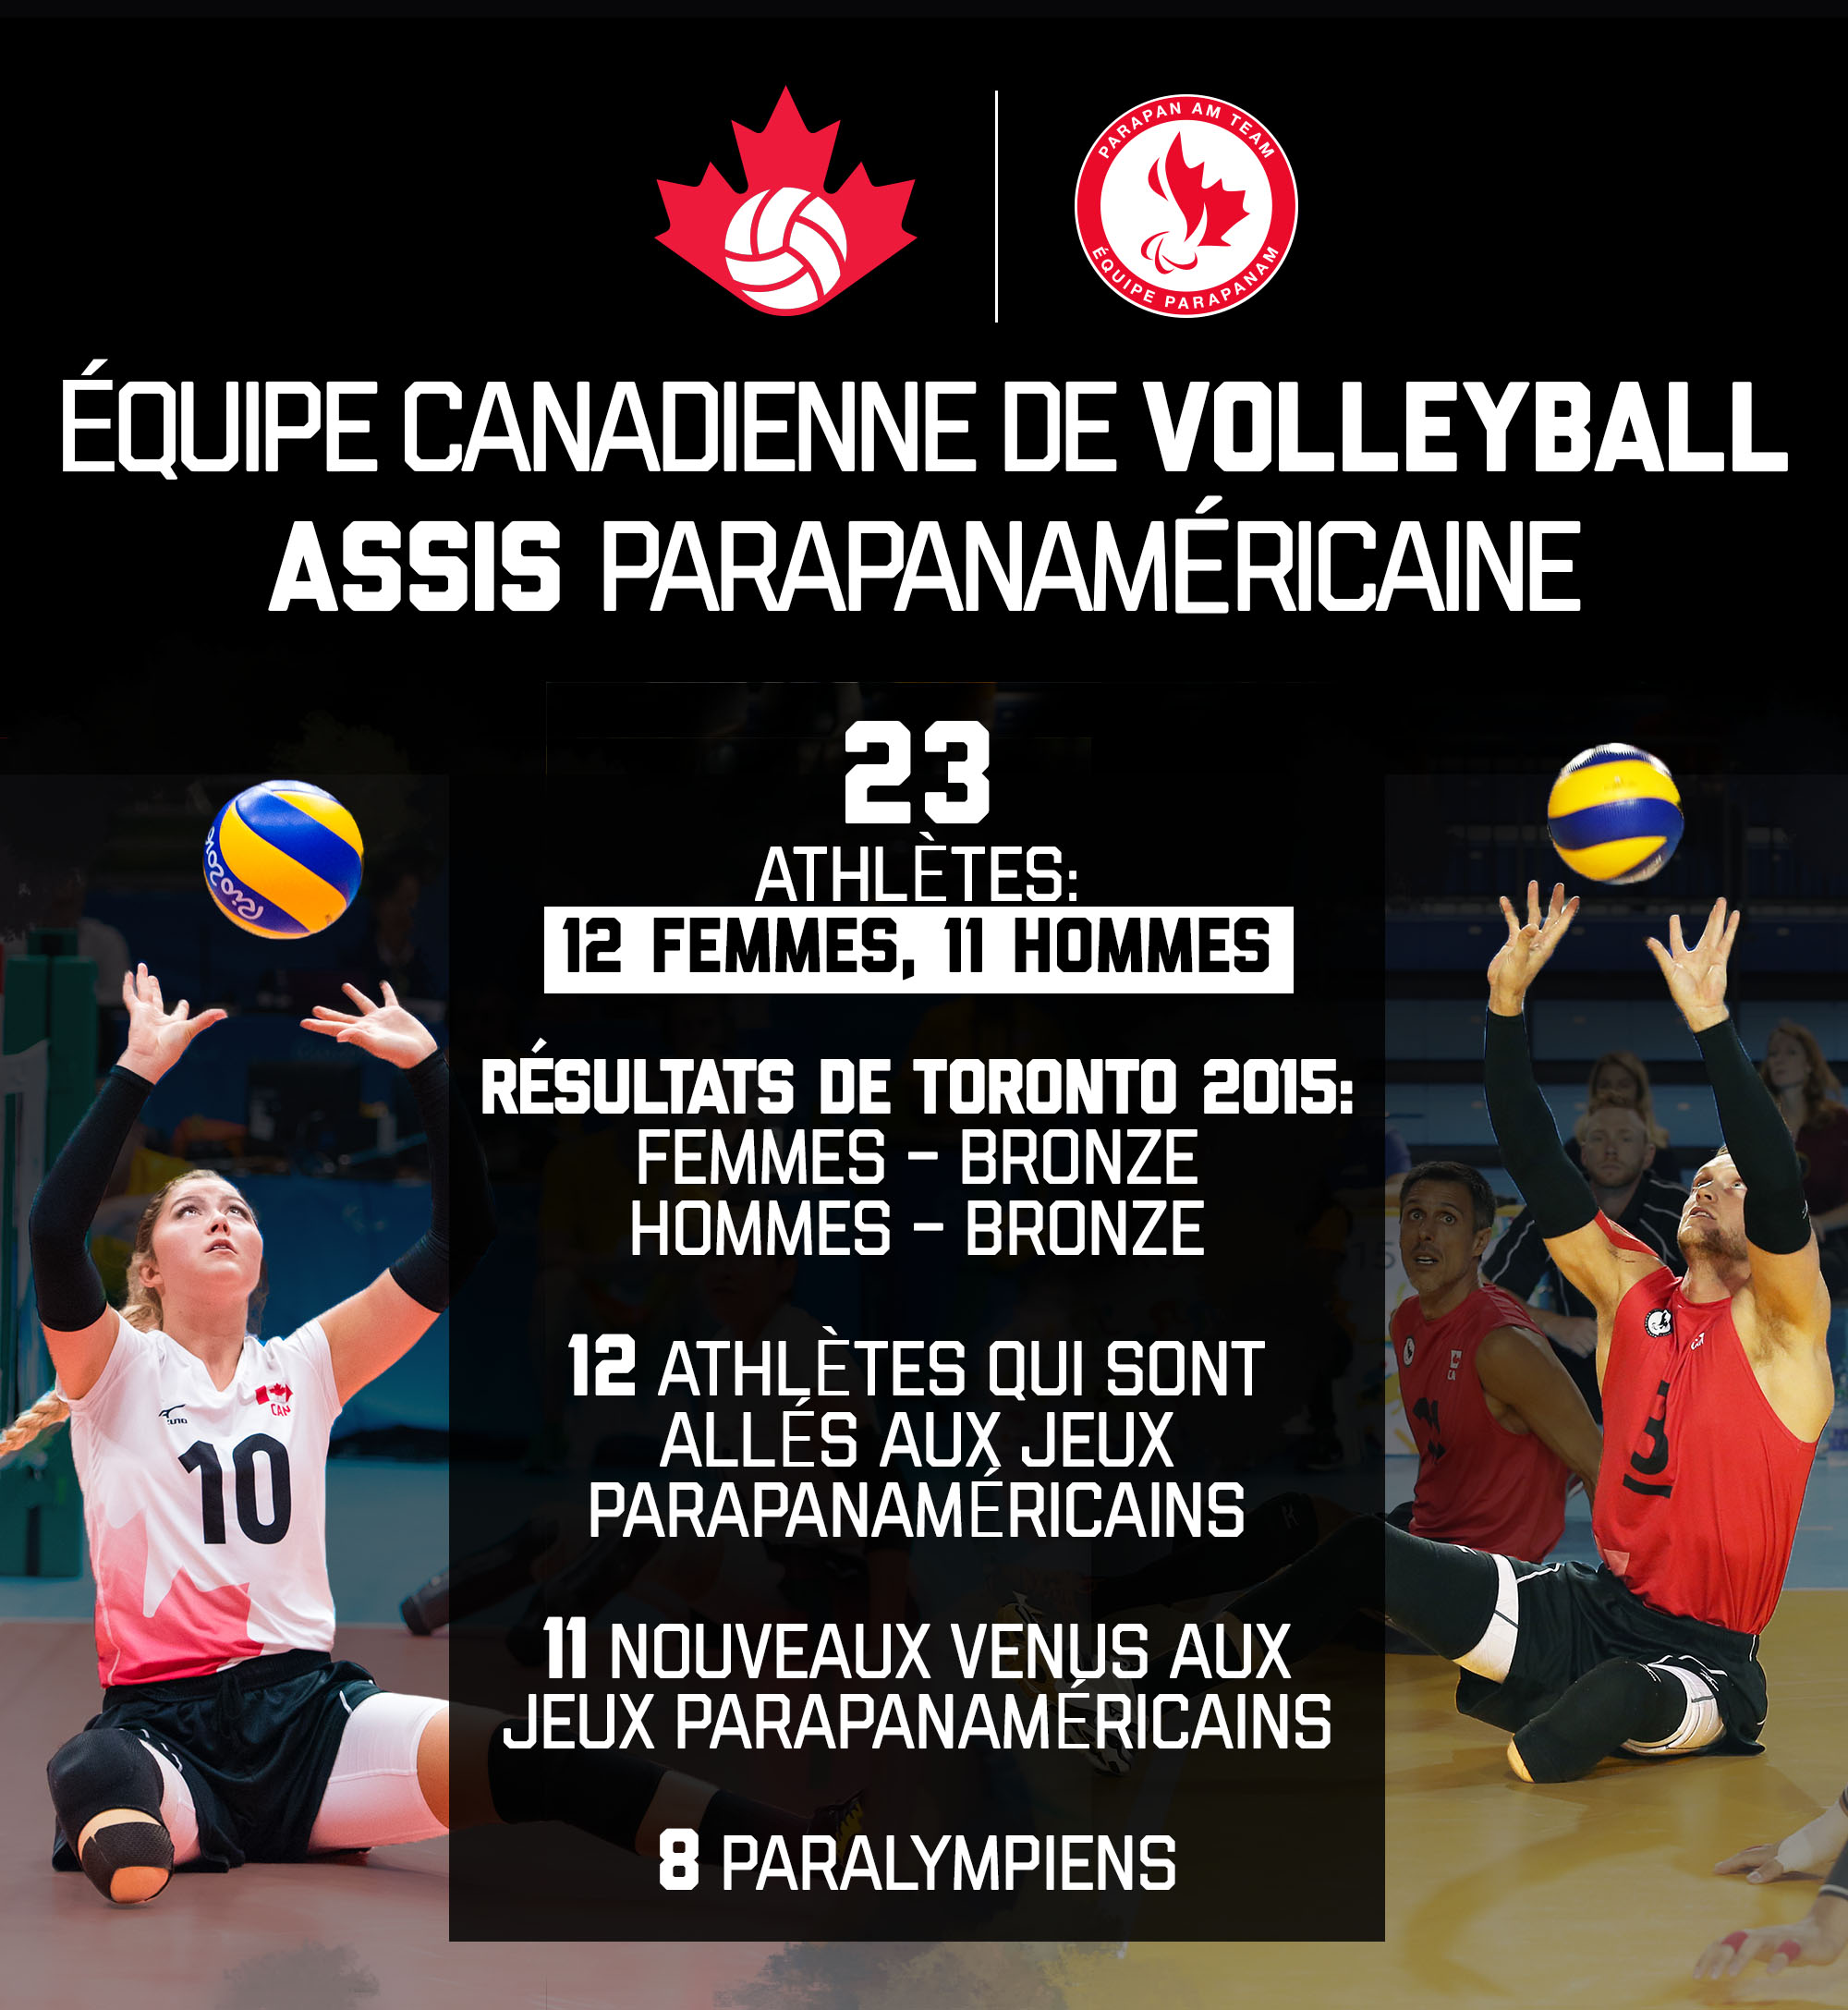 A graphic showing the make-up of the Canadian Parapan Am Sitting Volleyball Team